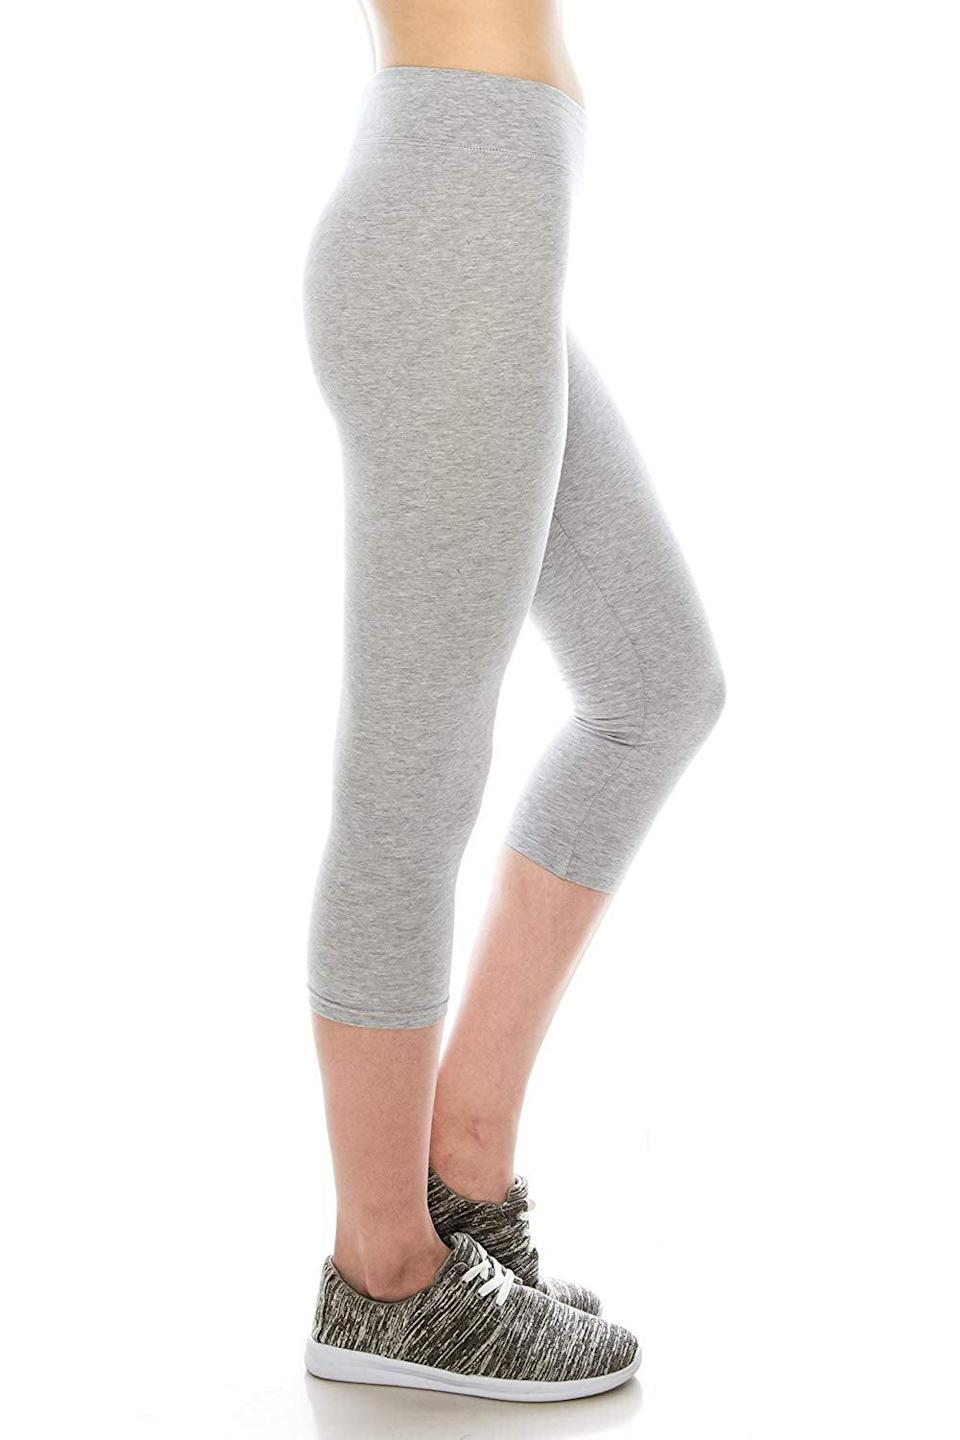 """<p>If you prefer a cropped legging, try these <a href=""""https://www.popsugar.com/buy/Cotton-Spandex-Basic-Leggings-365700?p_name=Cotton%20Spandex%20Basic%20Leggings&retailer=amazon.com&pid=365700&price=15&evar1=fit%3Aus&evar9=45278643&evar98=https%3A%2F%2Fwww.popsugar.com%2Ffitness%2Fphoto-gallery%2F45278643%2Fimage%2F45278648%2FCotton-Spandex-Basic-Leggings&list1=shopping%2Camazon%2Cworkout%20clothes%2Cleggings%2Cfitness%20gear&prop13=mobile&pdata=1"""" class=""""link rapid-noclick-resp"""" rel=""""nofollow noopener"""" target=""""_blank"""" data-ylk=""""slk:Cotton Spandex Basic Leggings"""">Cotton Spandex Basic Leggings</a> ($15). Customers """"love, love, love"""" these, and say that """"they definitely held up during crazy and sometimes brutal training/workout sessions.""""</p>"""